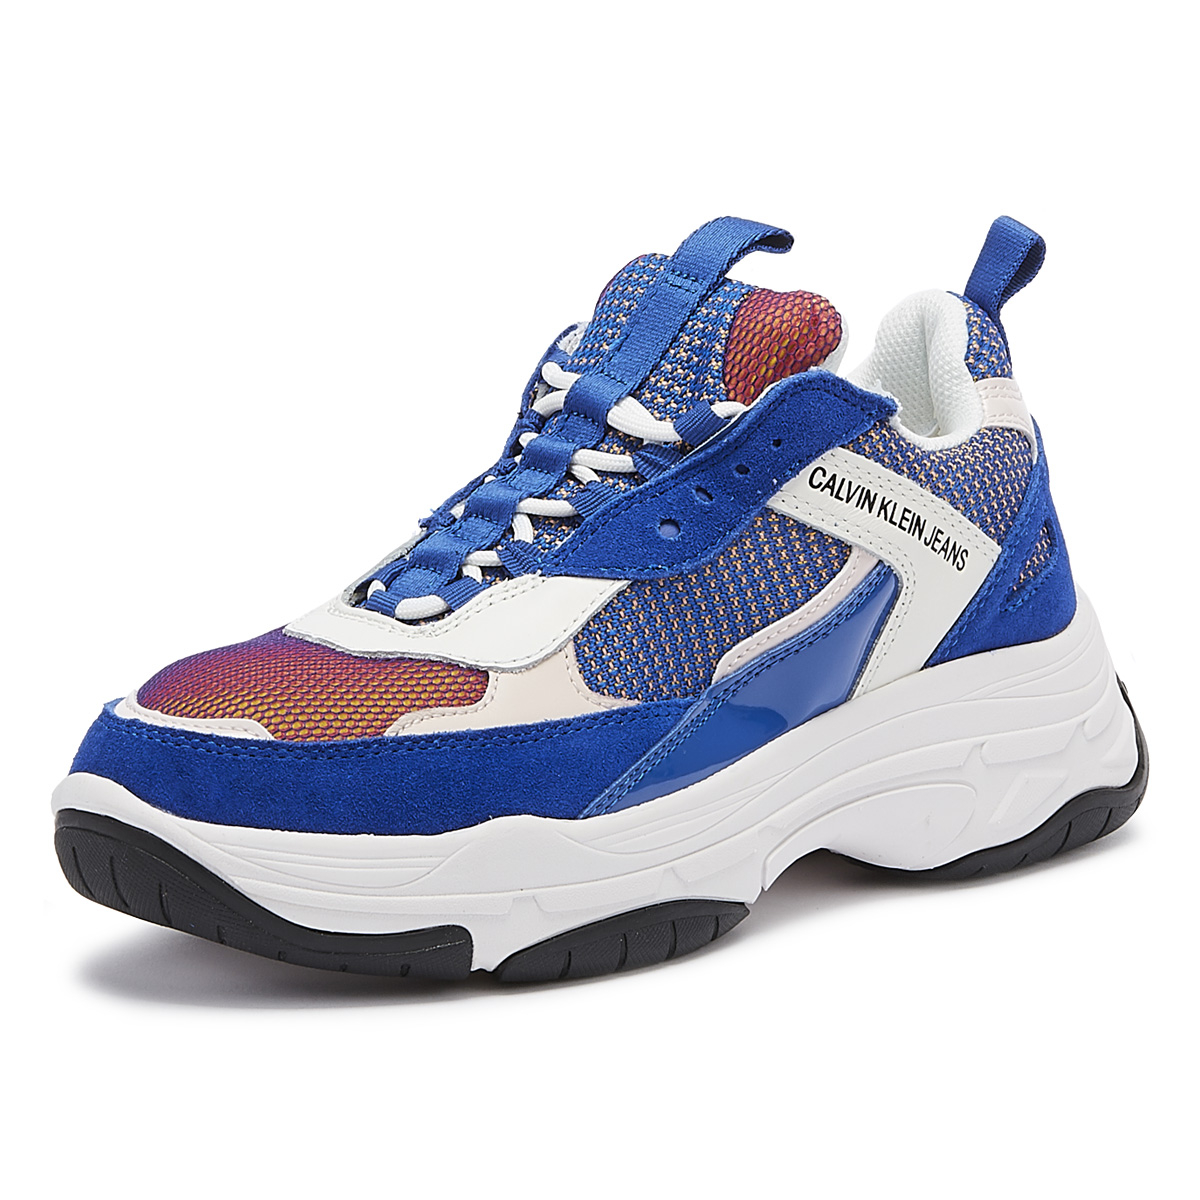 c6a2ef95570 Details about Calvin Klein Jeans Maya Womens Blue Trainers Sport Casual  Ladies Shoes